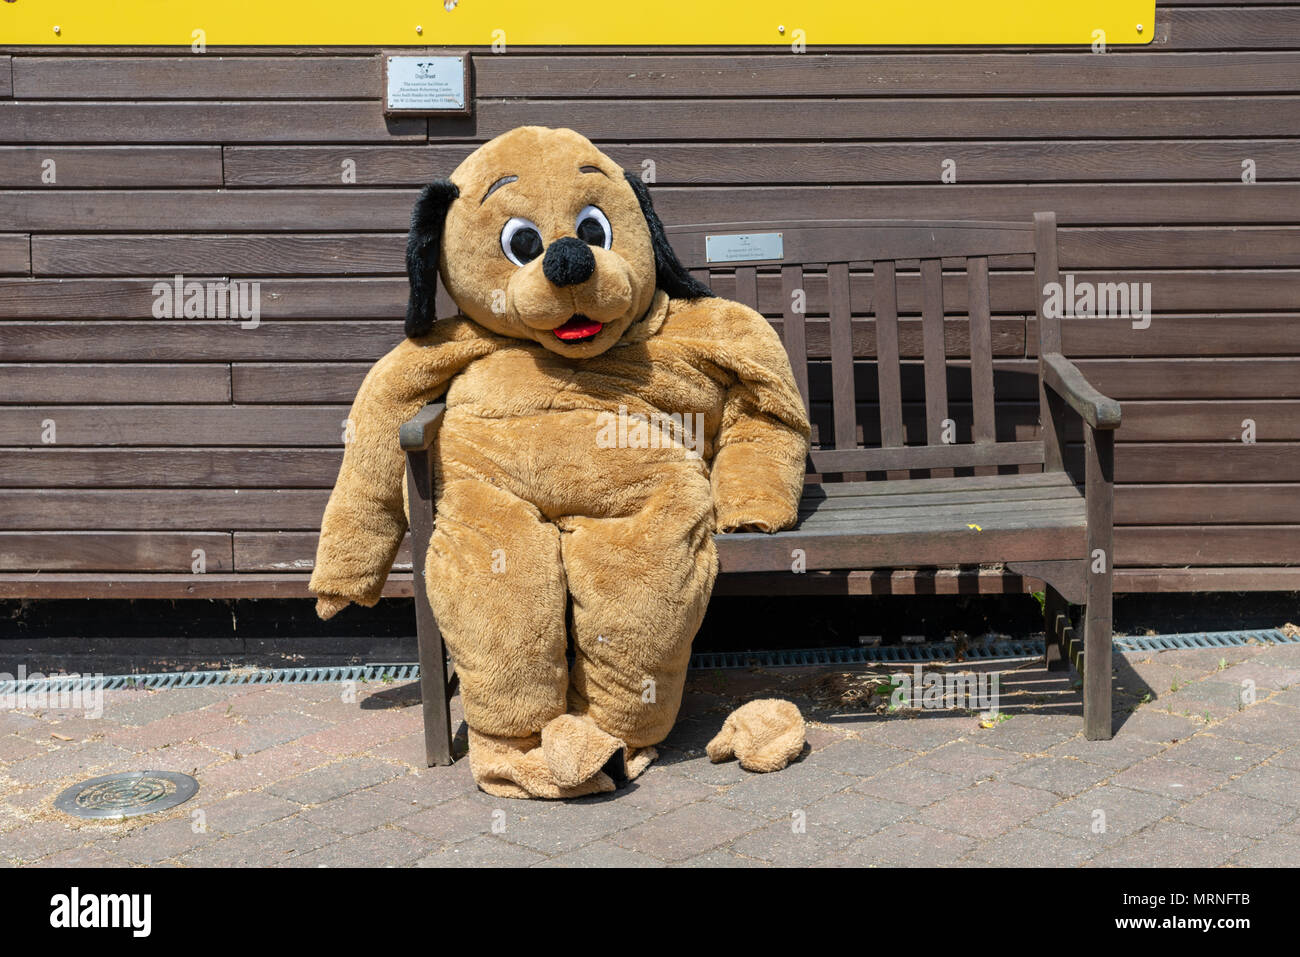 Pleasant Fancy Dress Dog Costume Sitting On A Wooden Bench Outside On Gmtry Best Dining Table And Chair Ideas Images Gmtryco